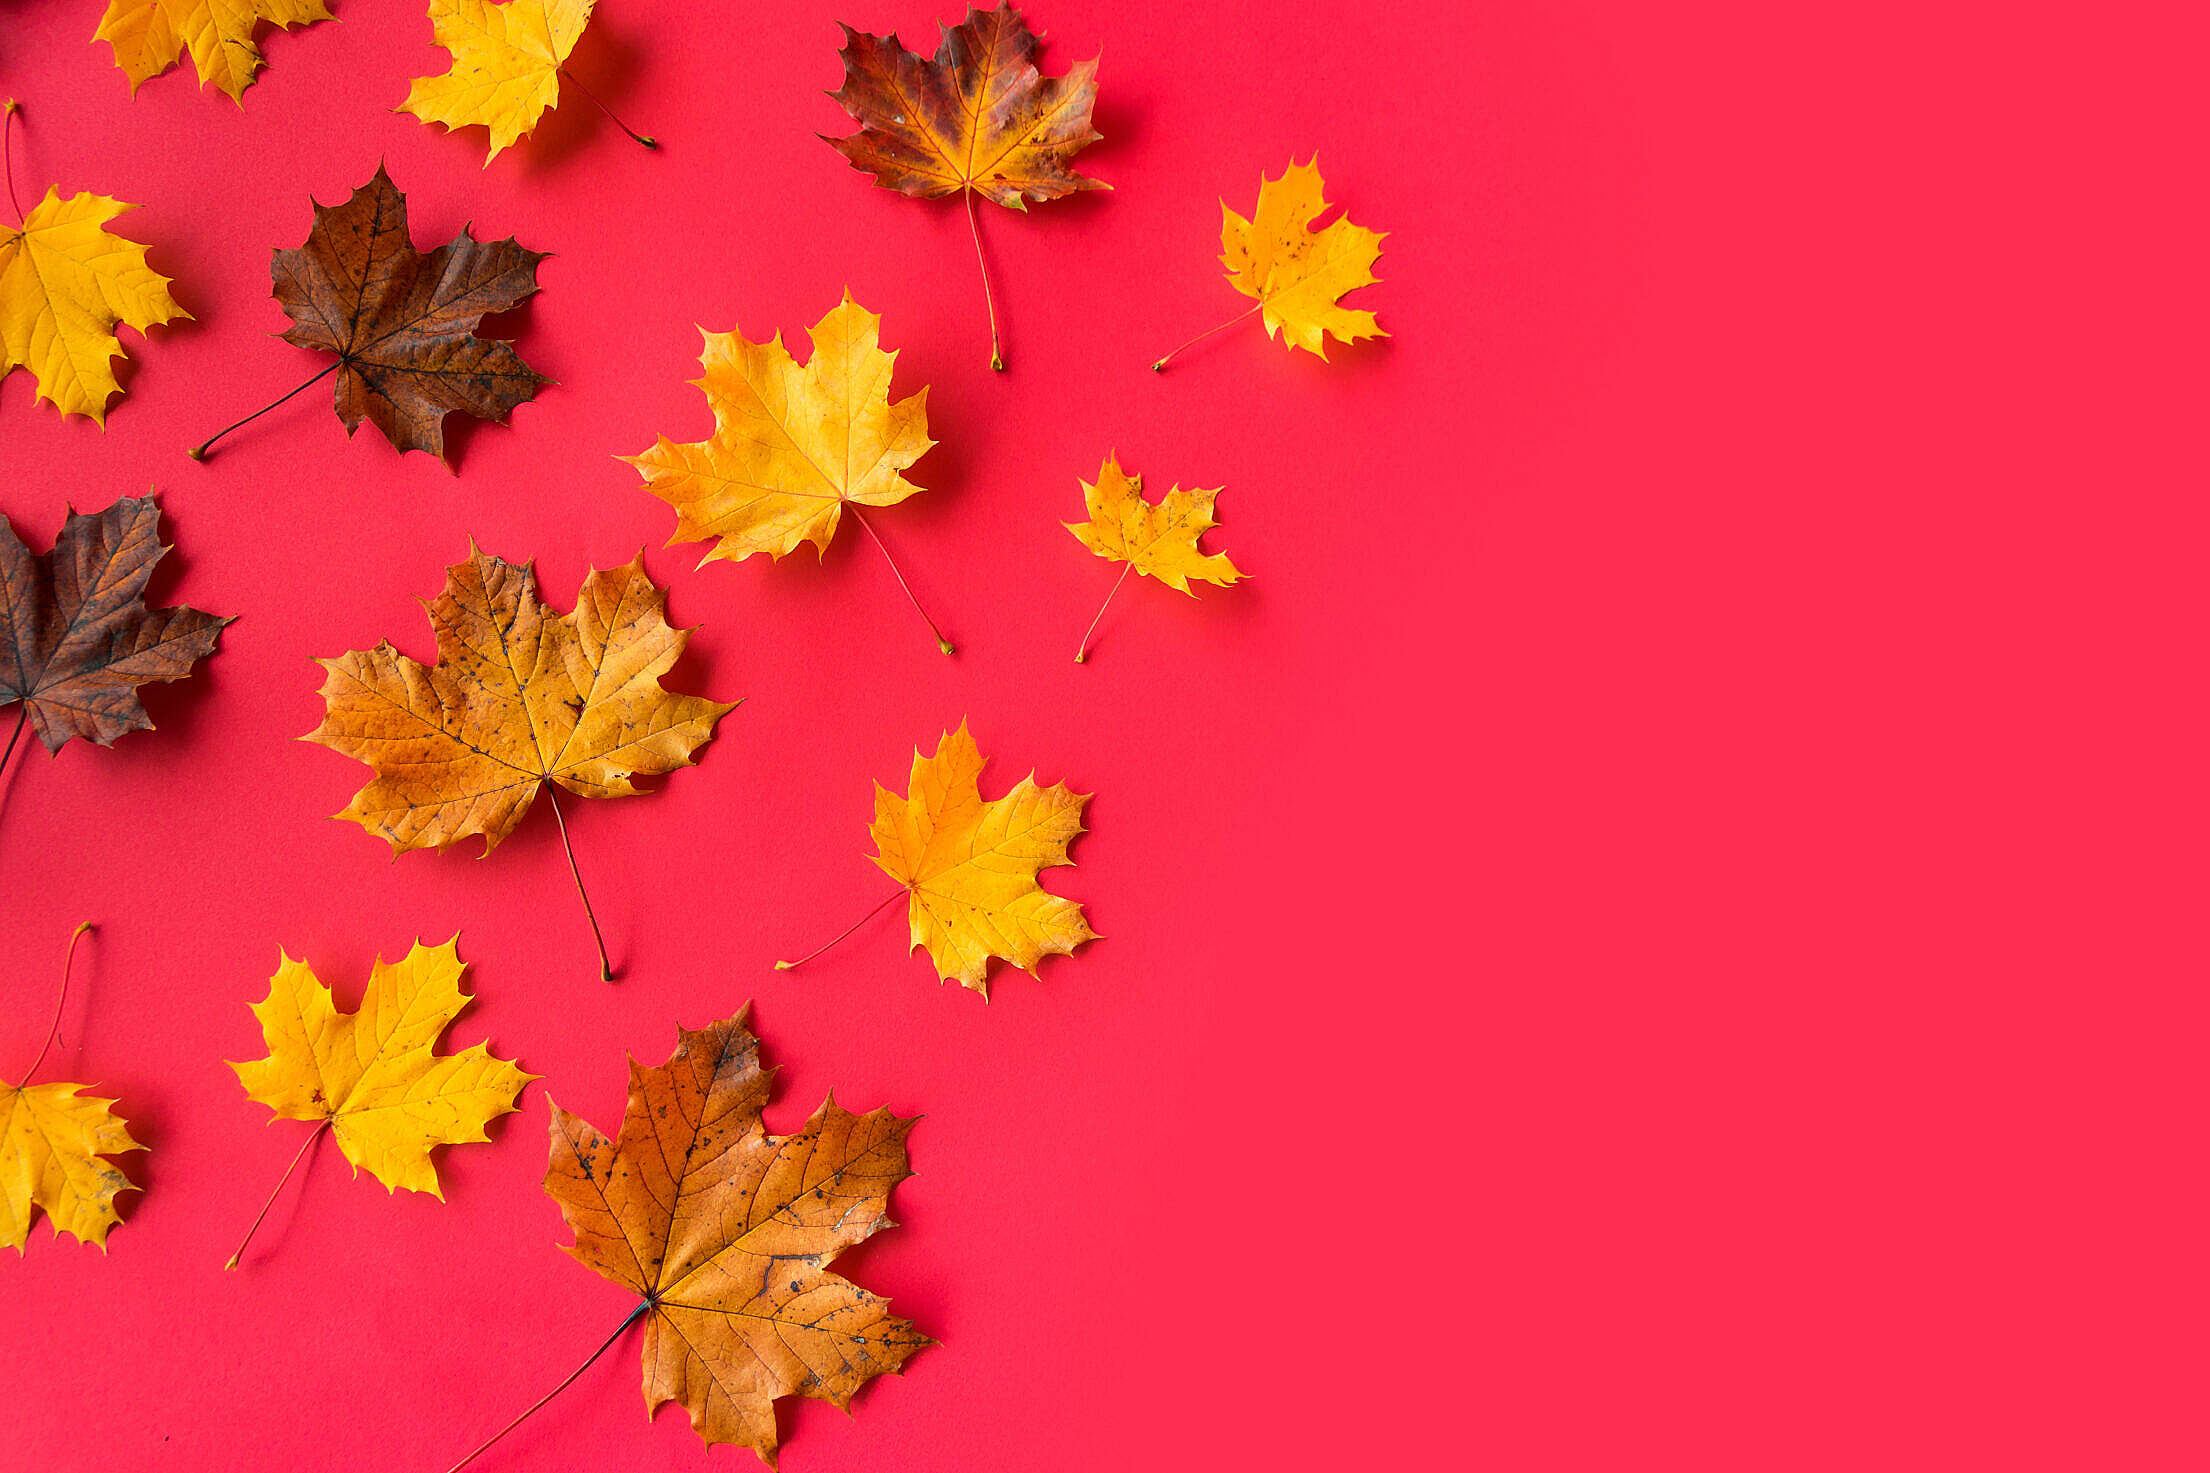 Autumn Leaves on Flat Red Background with Room for Text Free Stock Photo